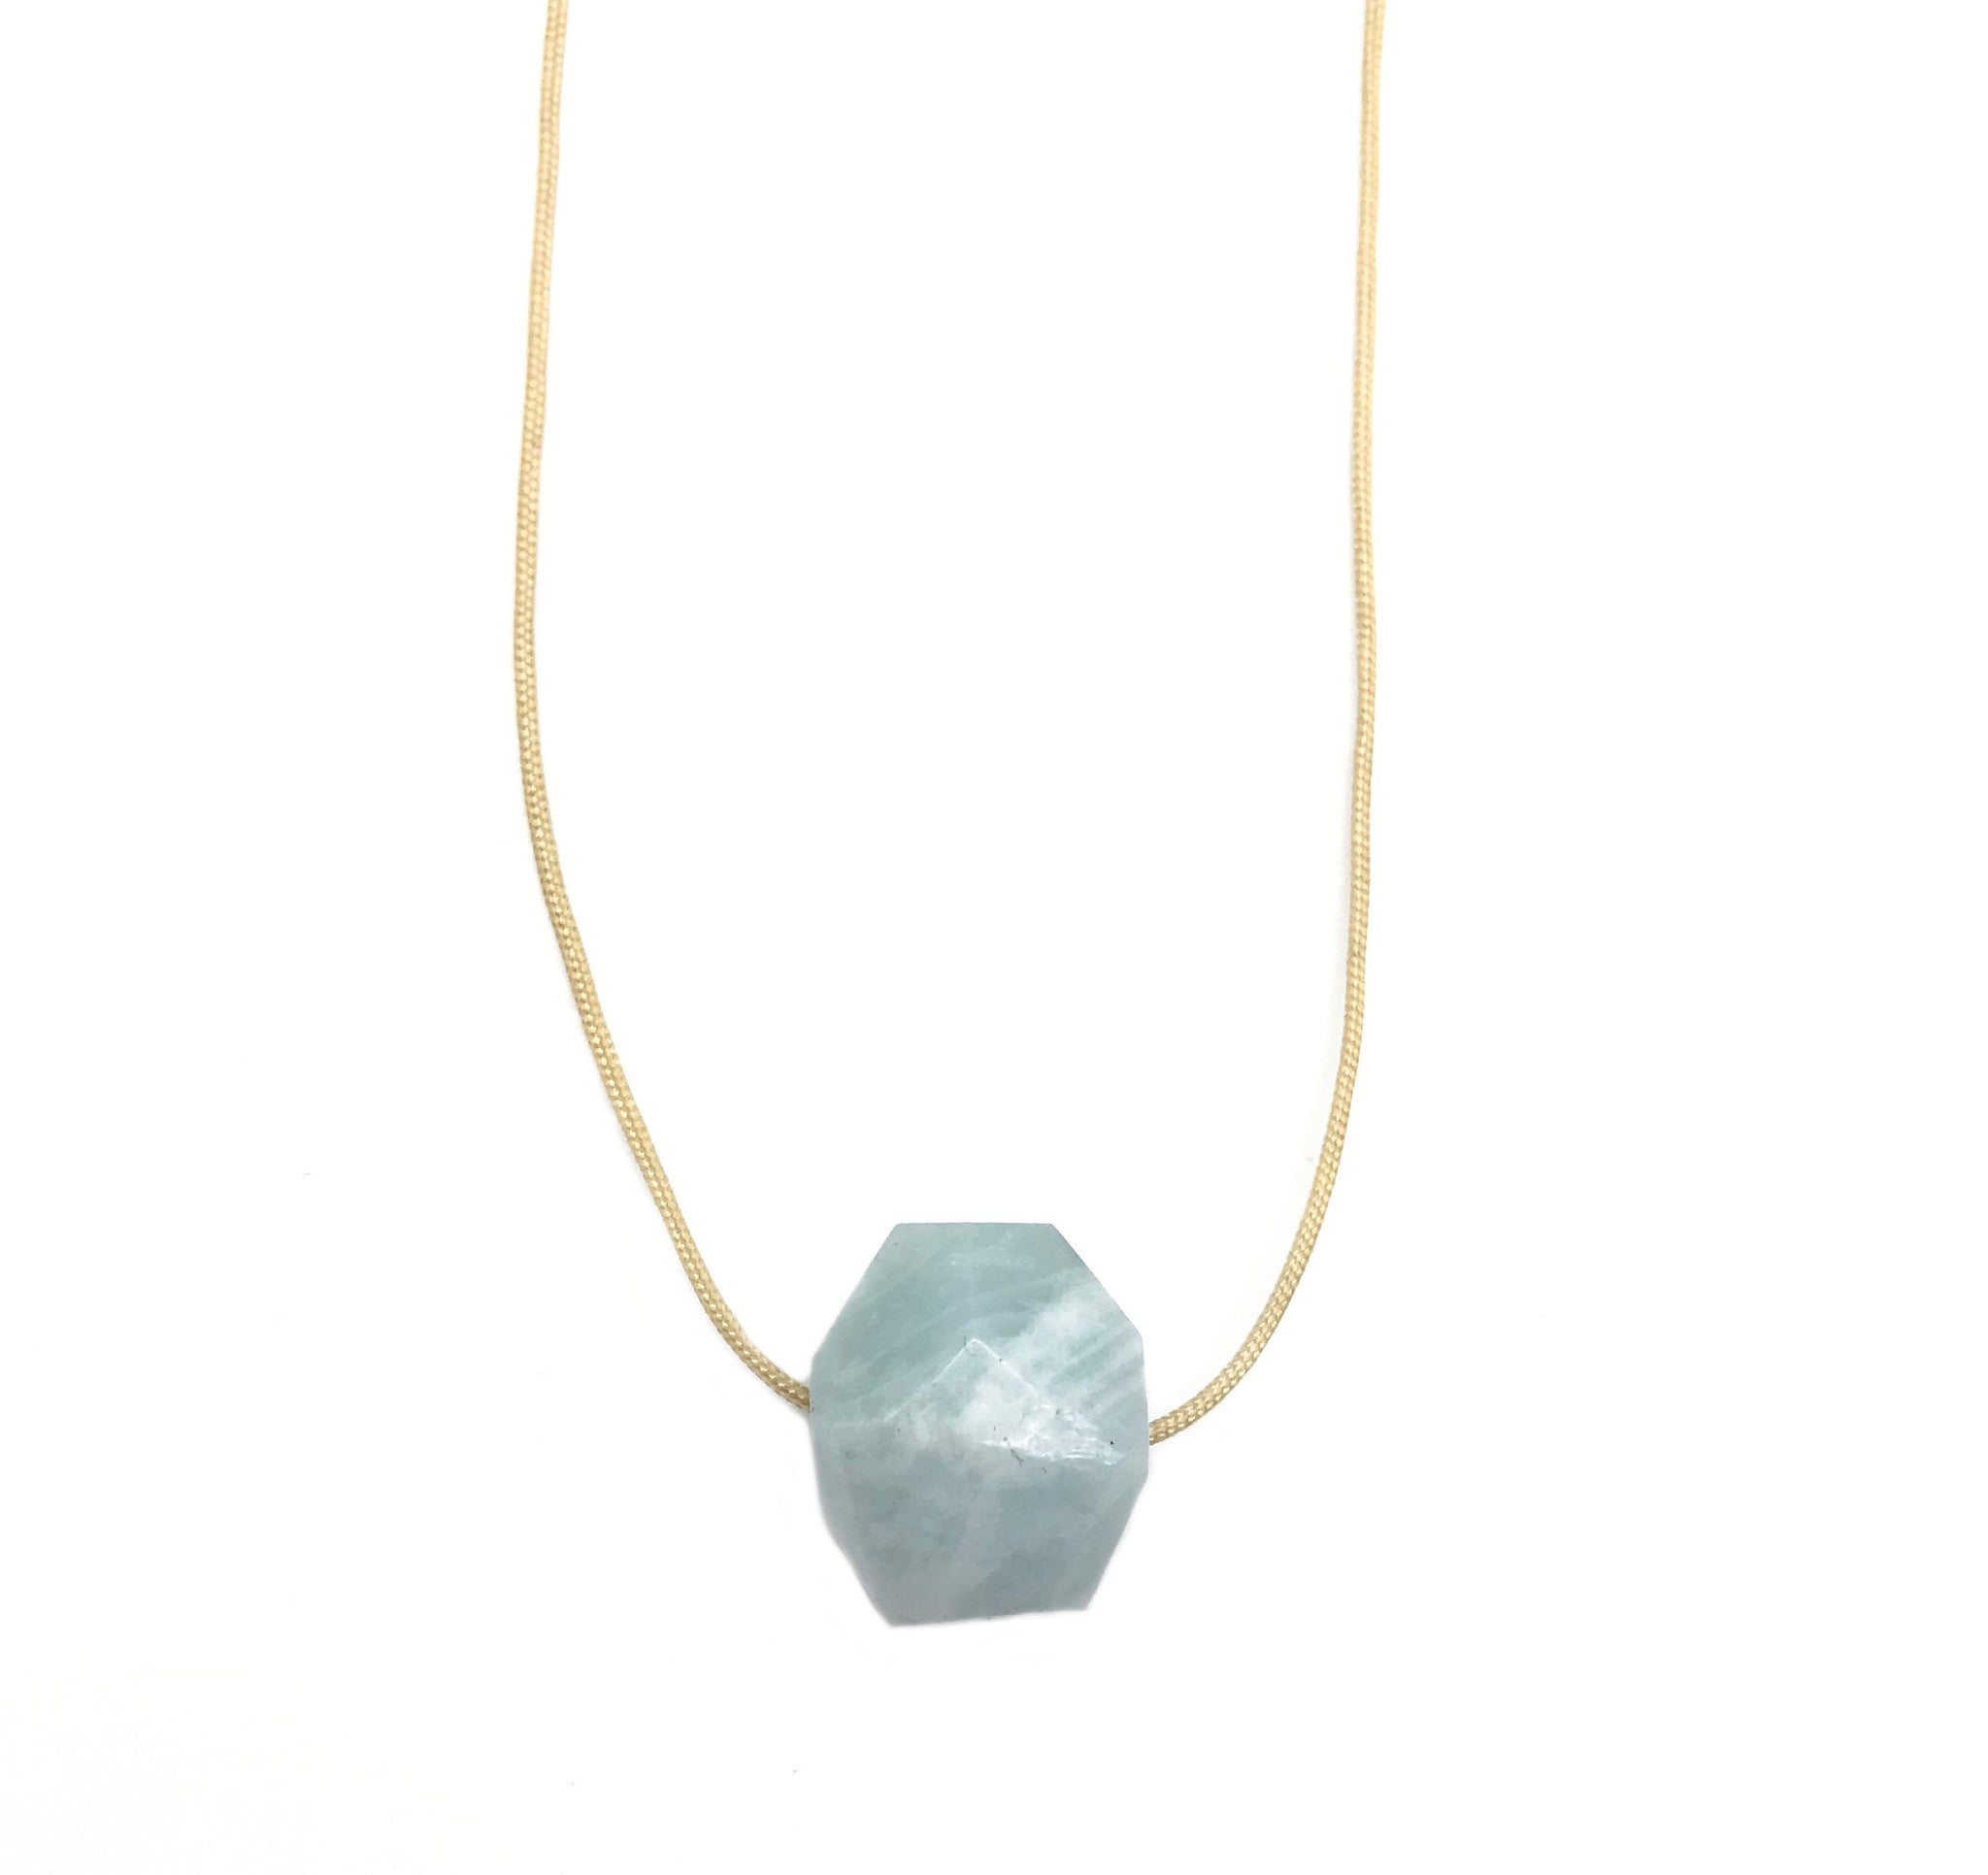 Natural Aquamarine Nude Hypoallergenic Cord Necklace 16 to 28 Inches Unisex